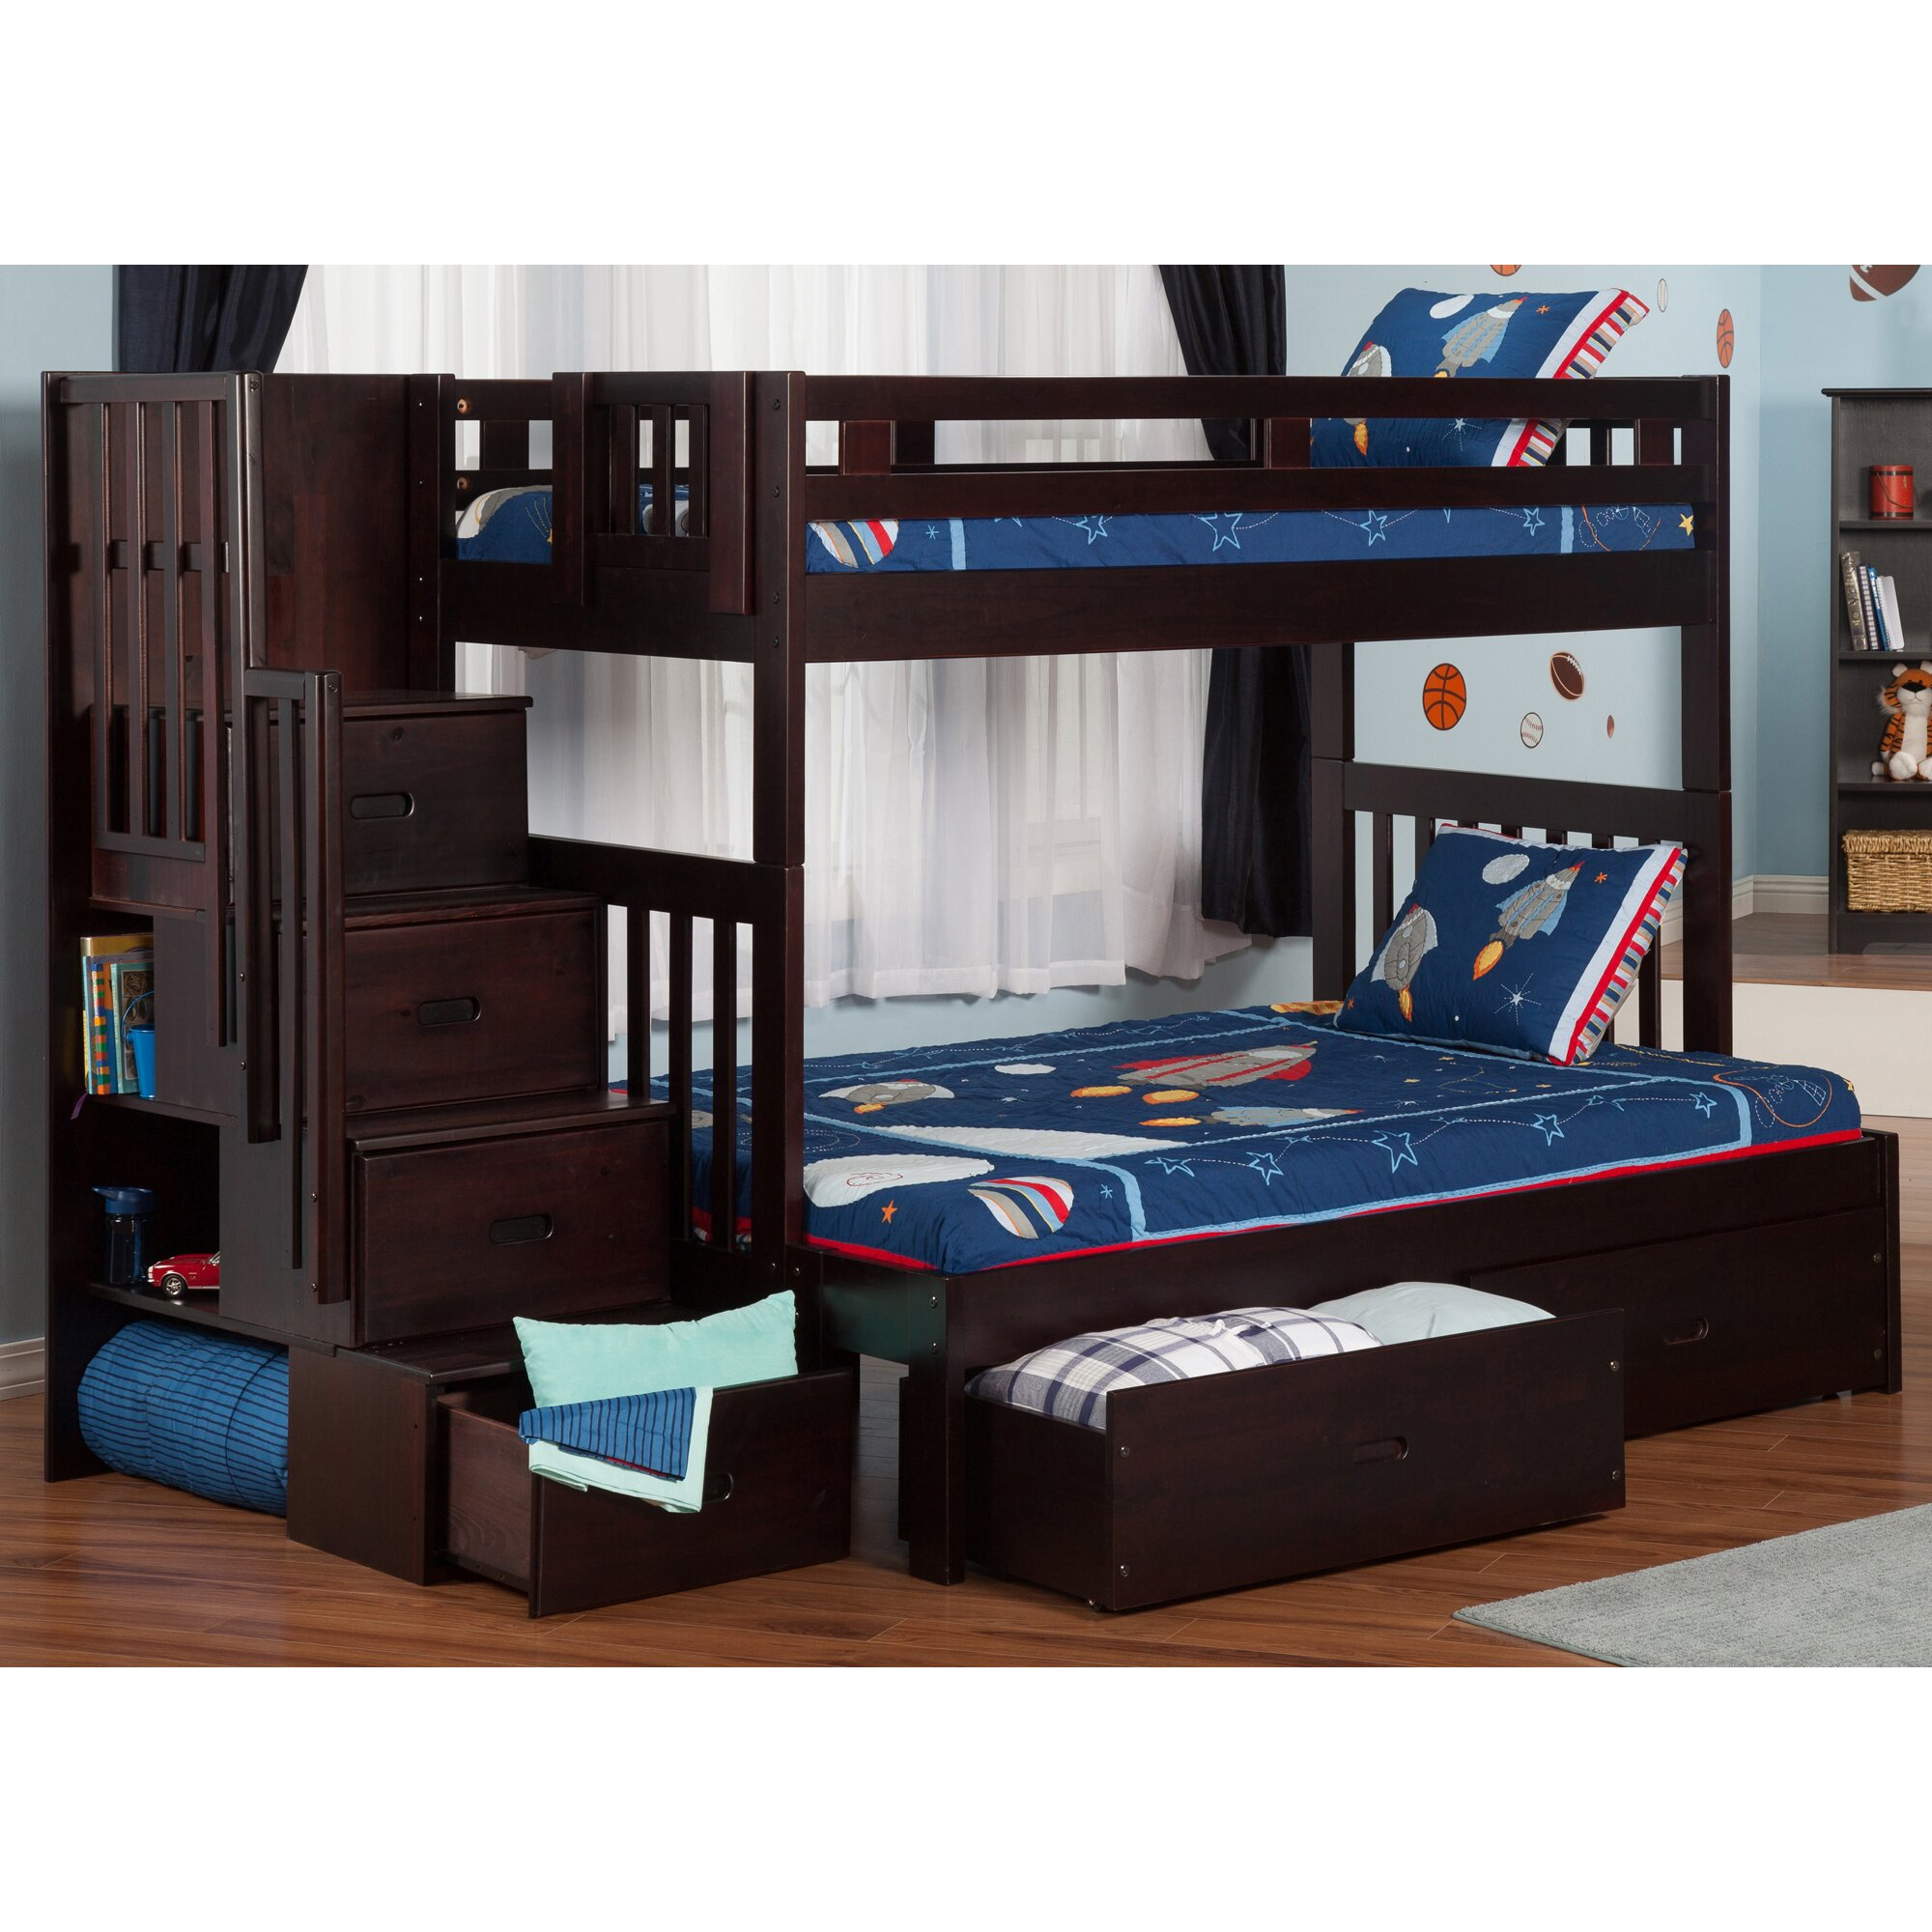 Bunk bed with stairs and storage - Twin Over Full Bunk Bed With Staircase And Storage